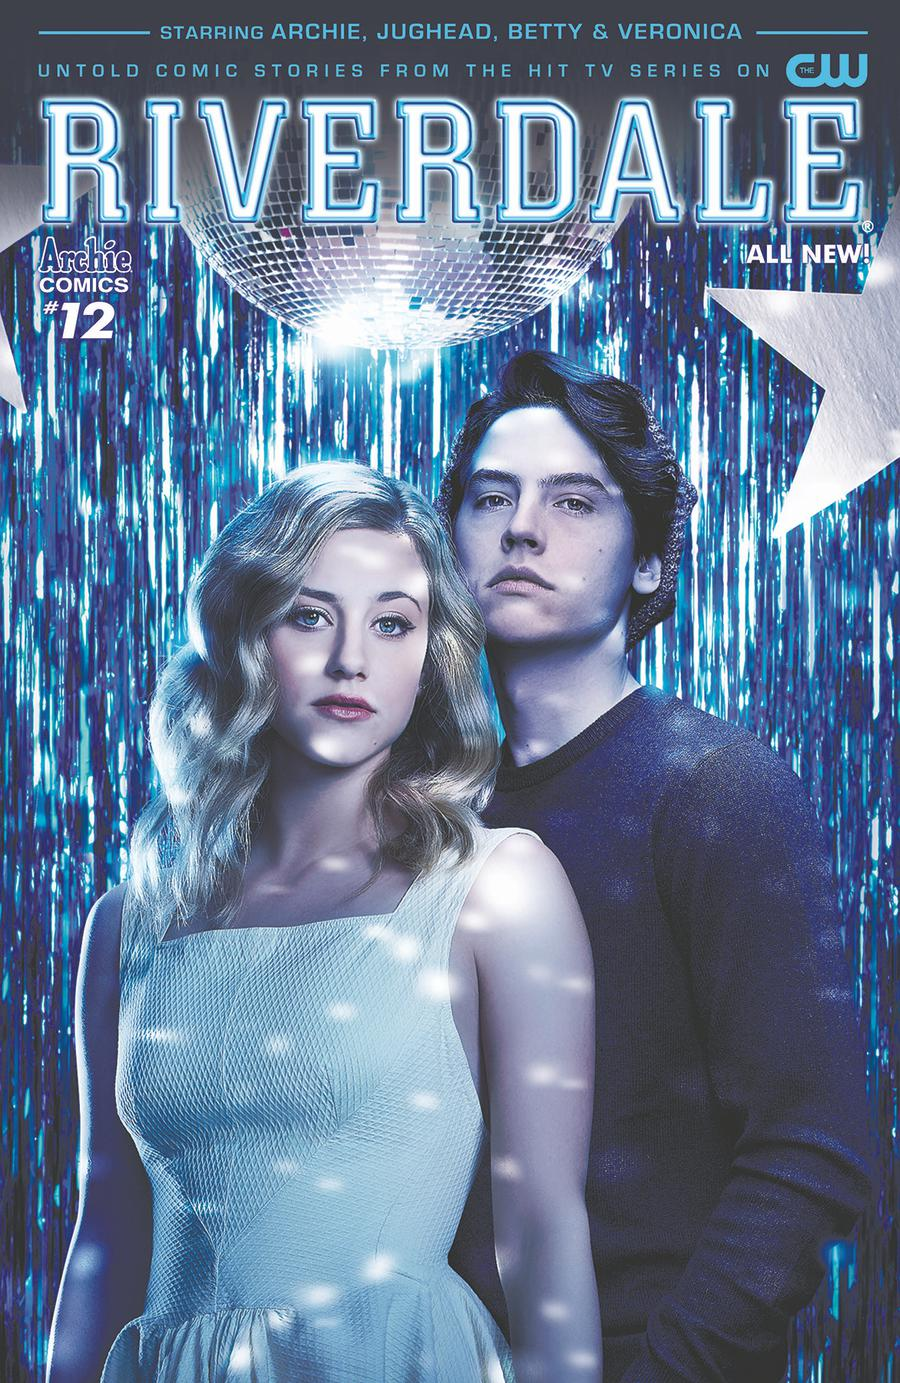 Riverdale #12 Cover B Variant CW Photo Cover